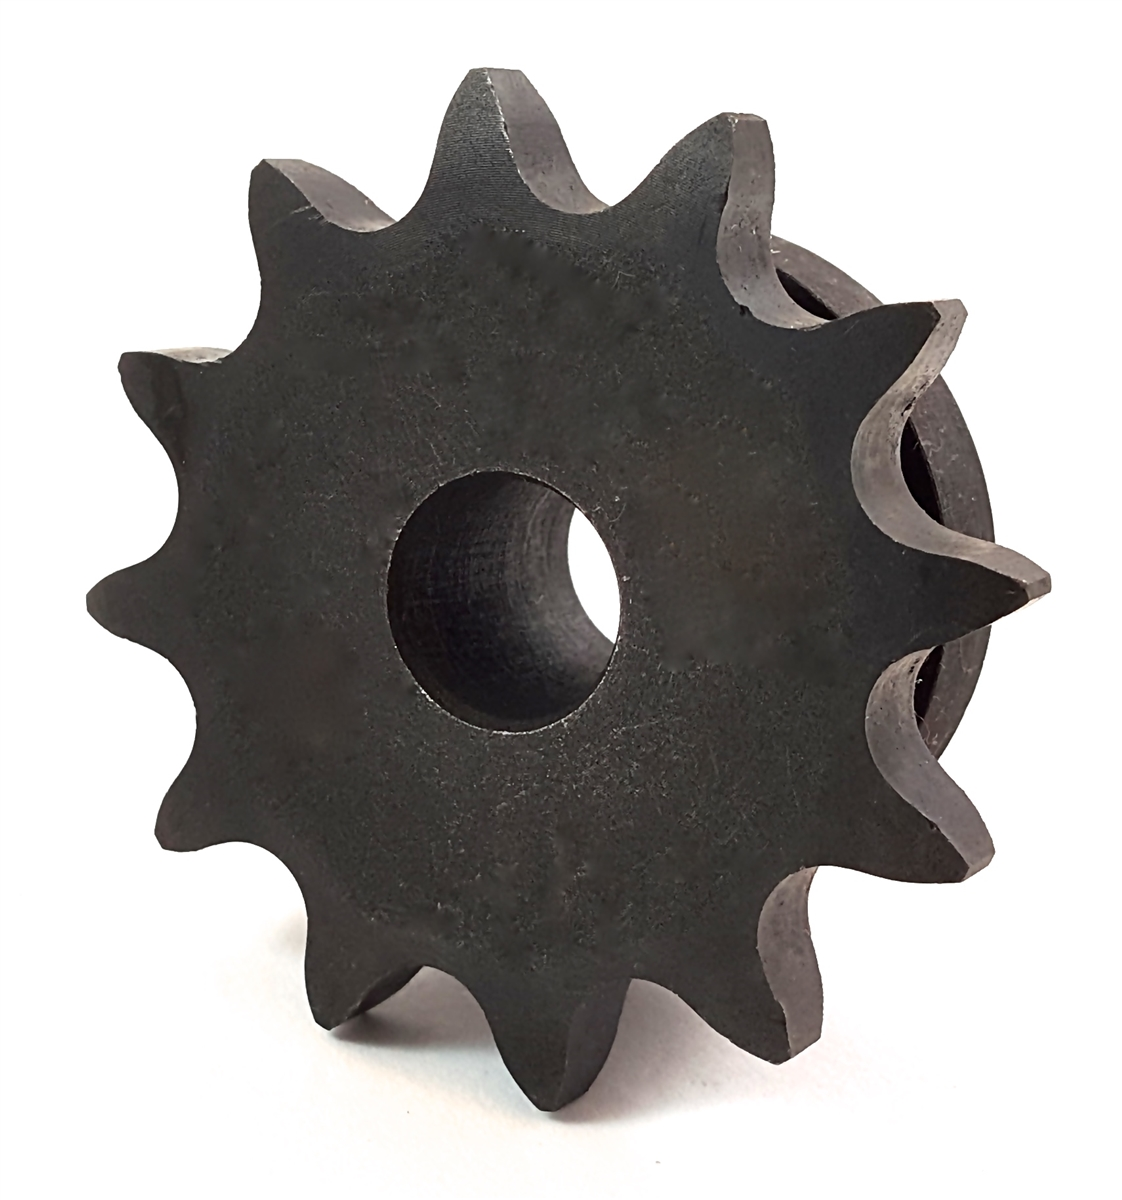 New Weld On 14 Tooth Sprocket With 1-5//8 Hole /& For 50 Chain Size Hub Series W.